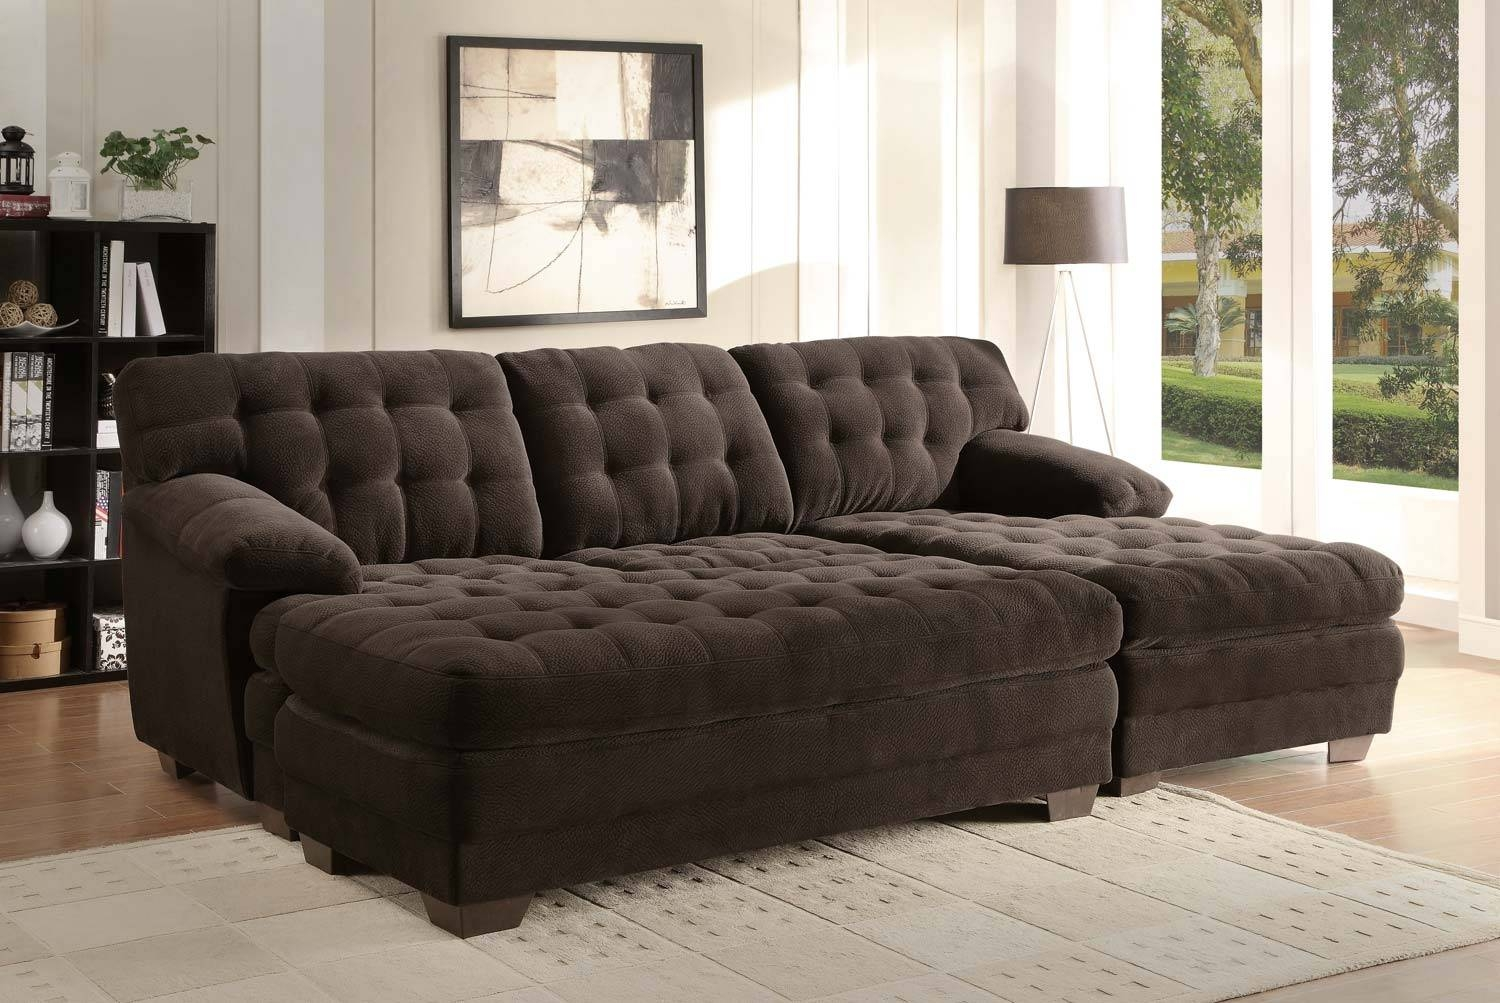 Sectional Sofa Couch Reversible Chaise Micro Suede Chocolate throughout Sofa With Chaise And Ottoman (Image 23 of 30)